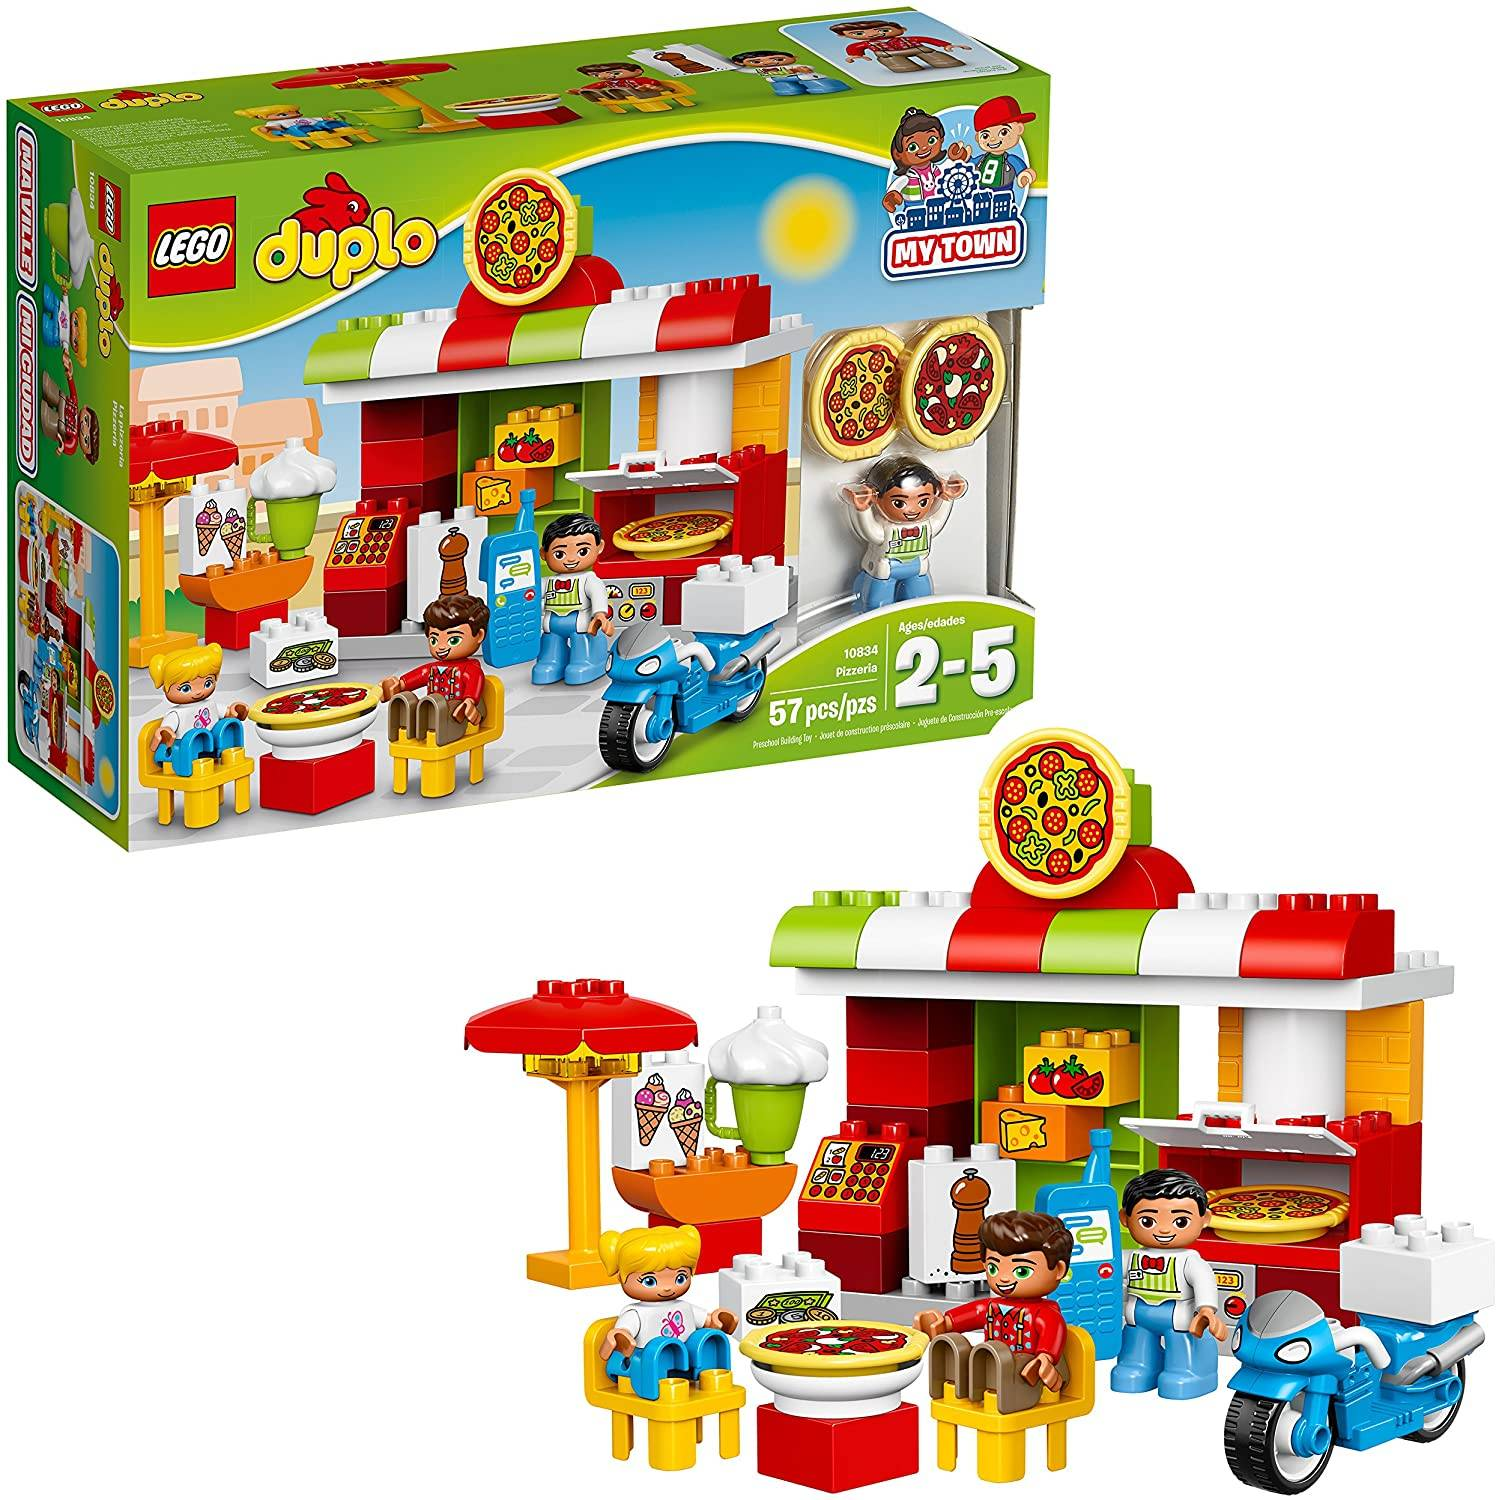 Town Pizzeria using Lego Duplo 10834 for Pre School Pre-Kindergarten Large Building Block Toys for young ones.